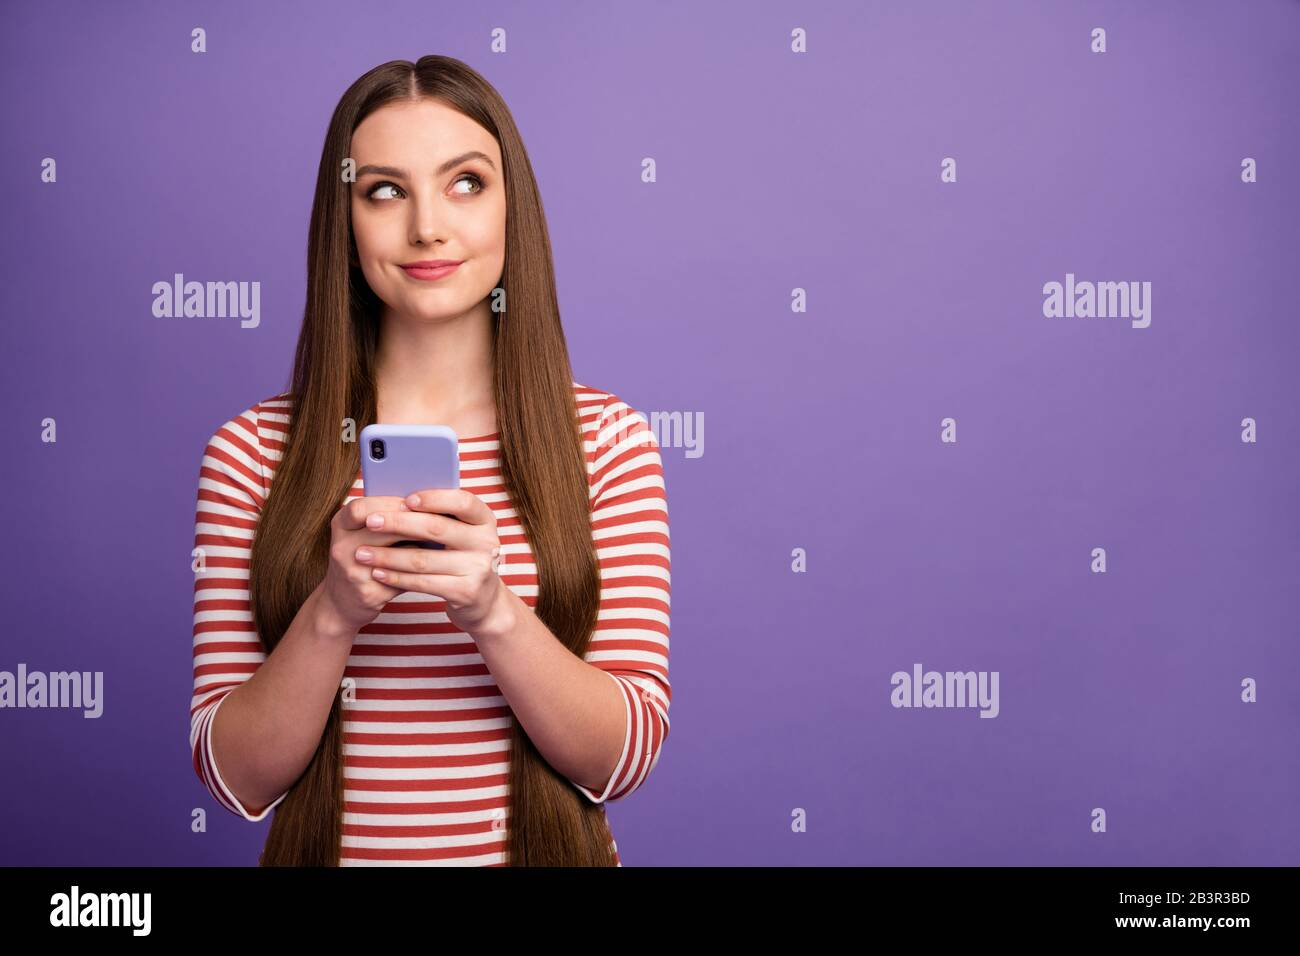 Portrait of minded cute sweet girl look copyspace use smartphone wonder consider blog post subjects wear jumper isolated over purple color background Stock Photo